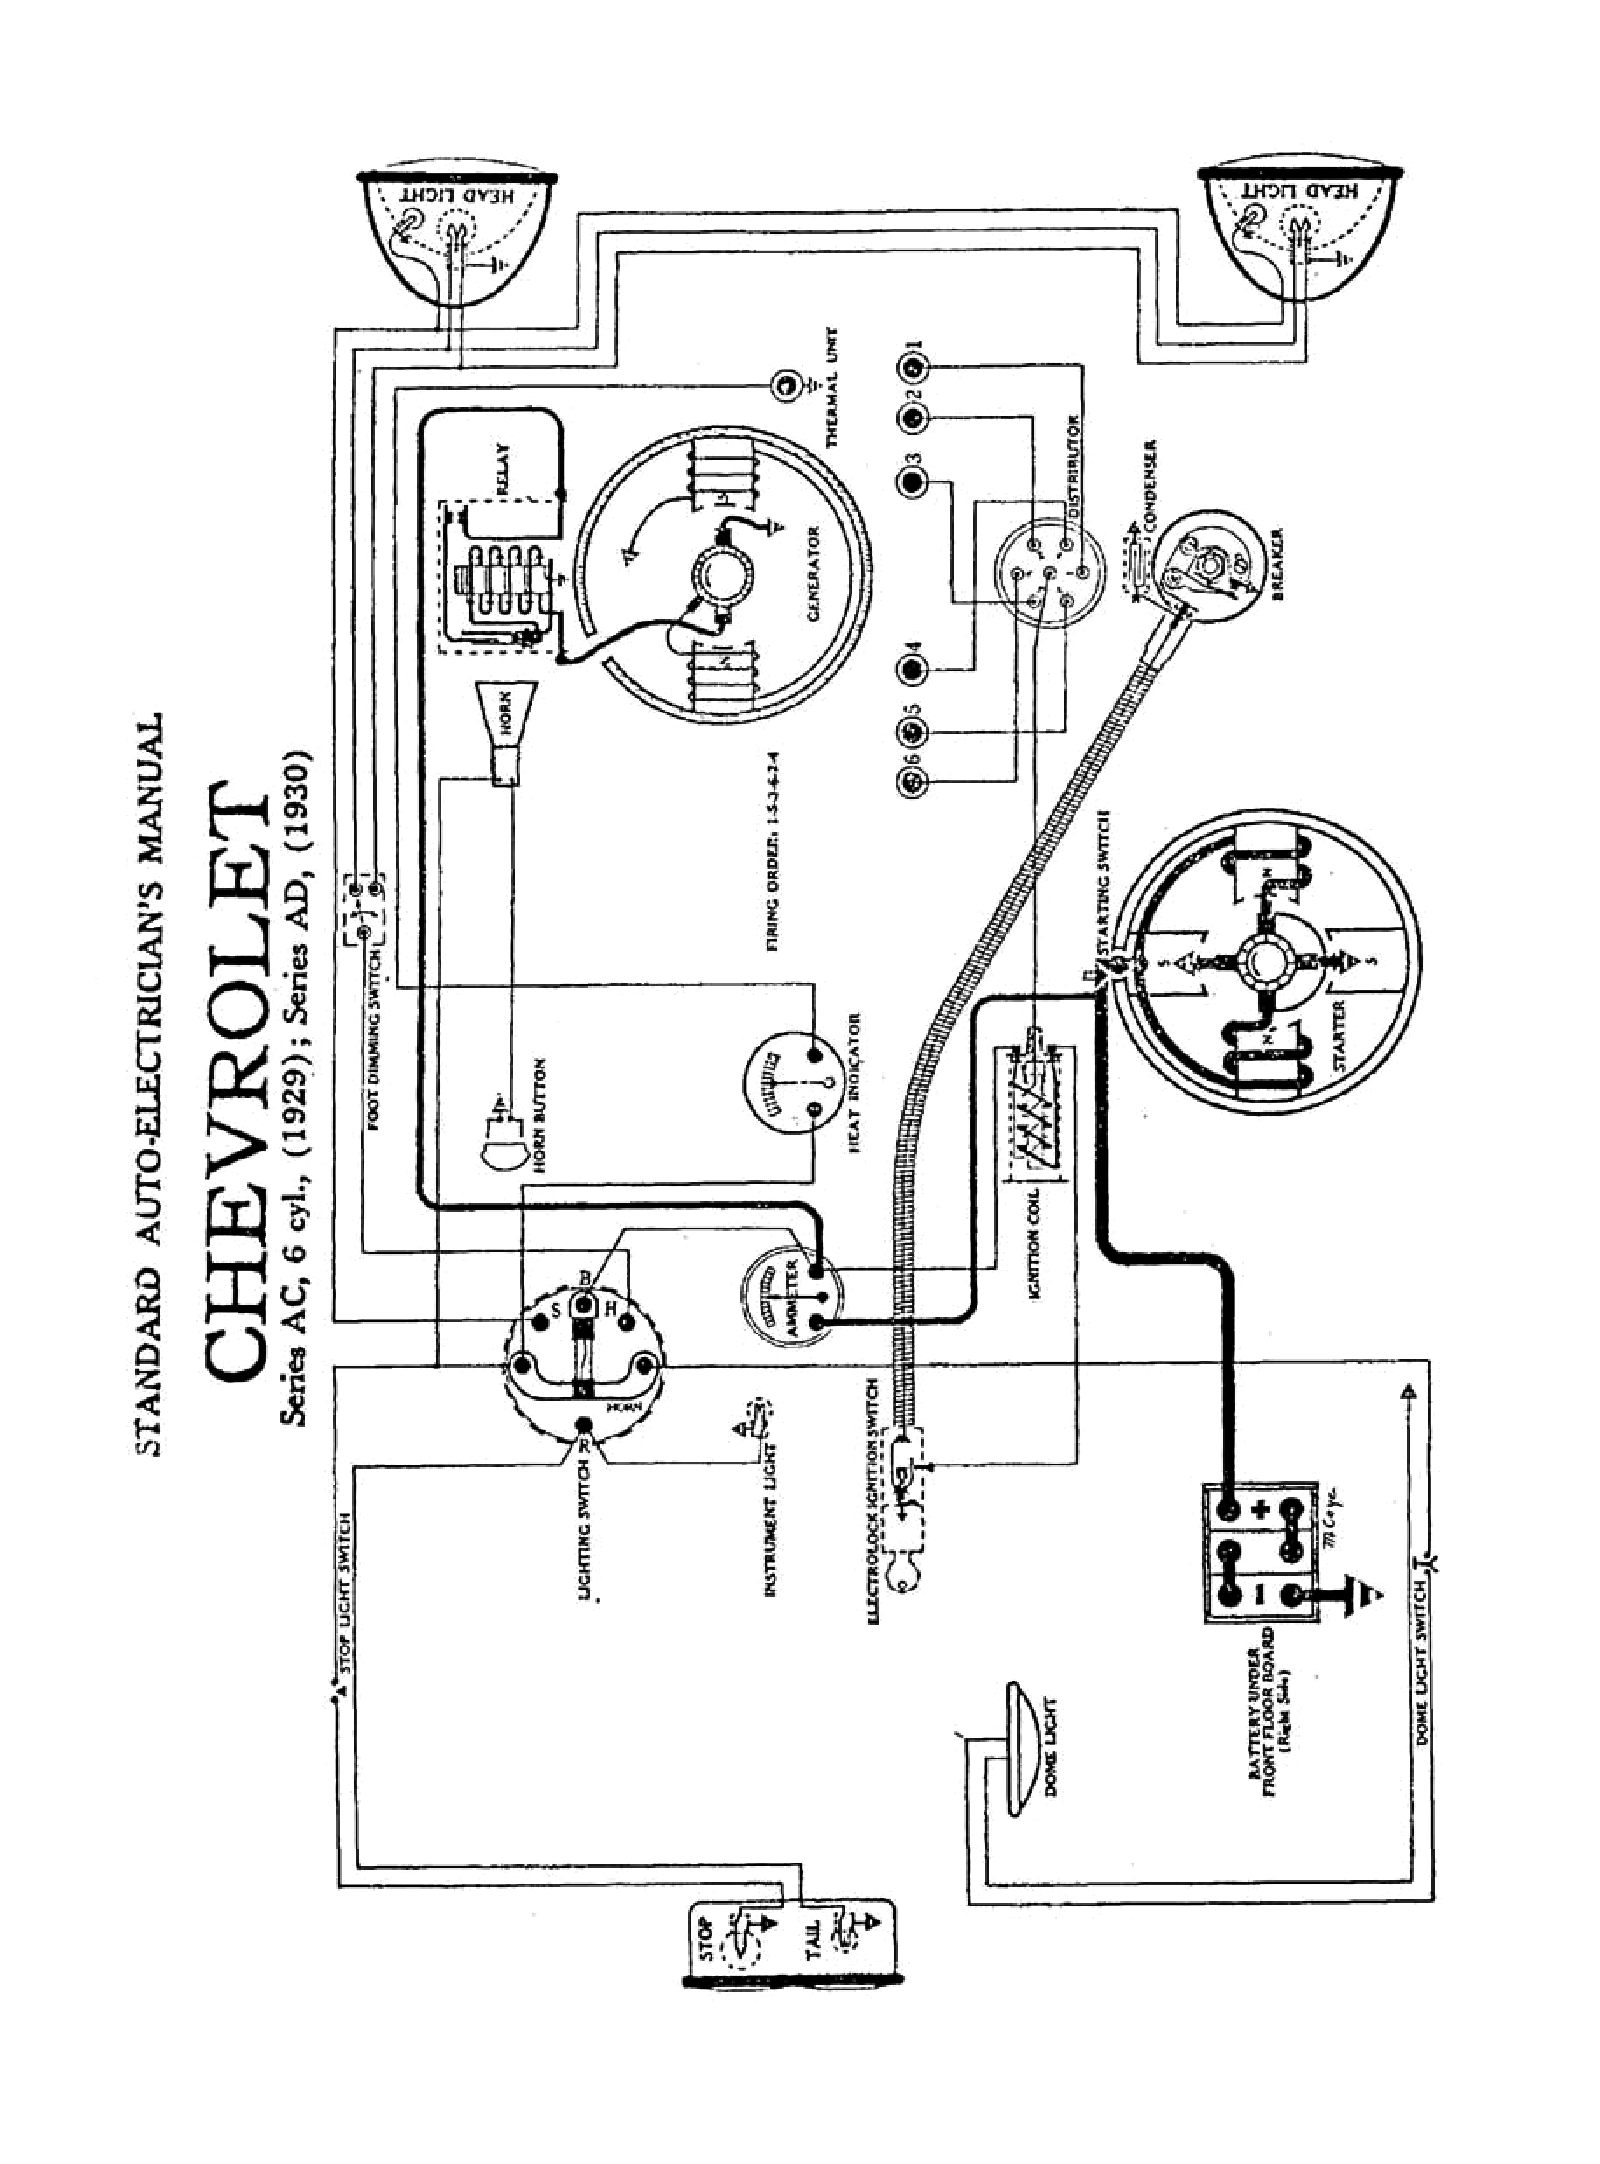 2930wiring chevy wiring diagrams 1965 C10 Wiring-Diagram at fashall.co